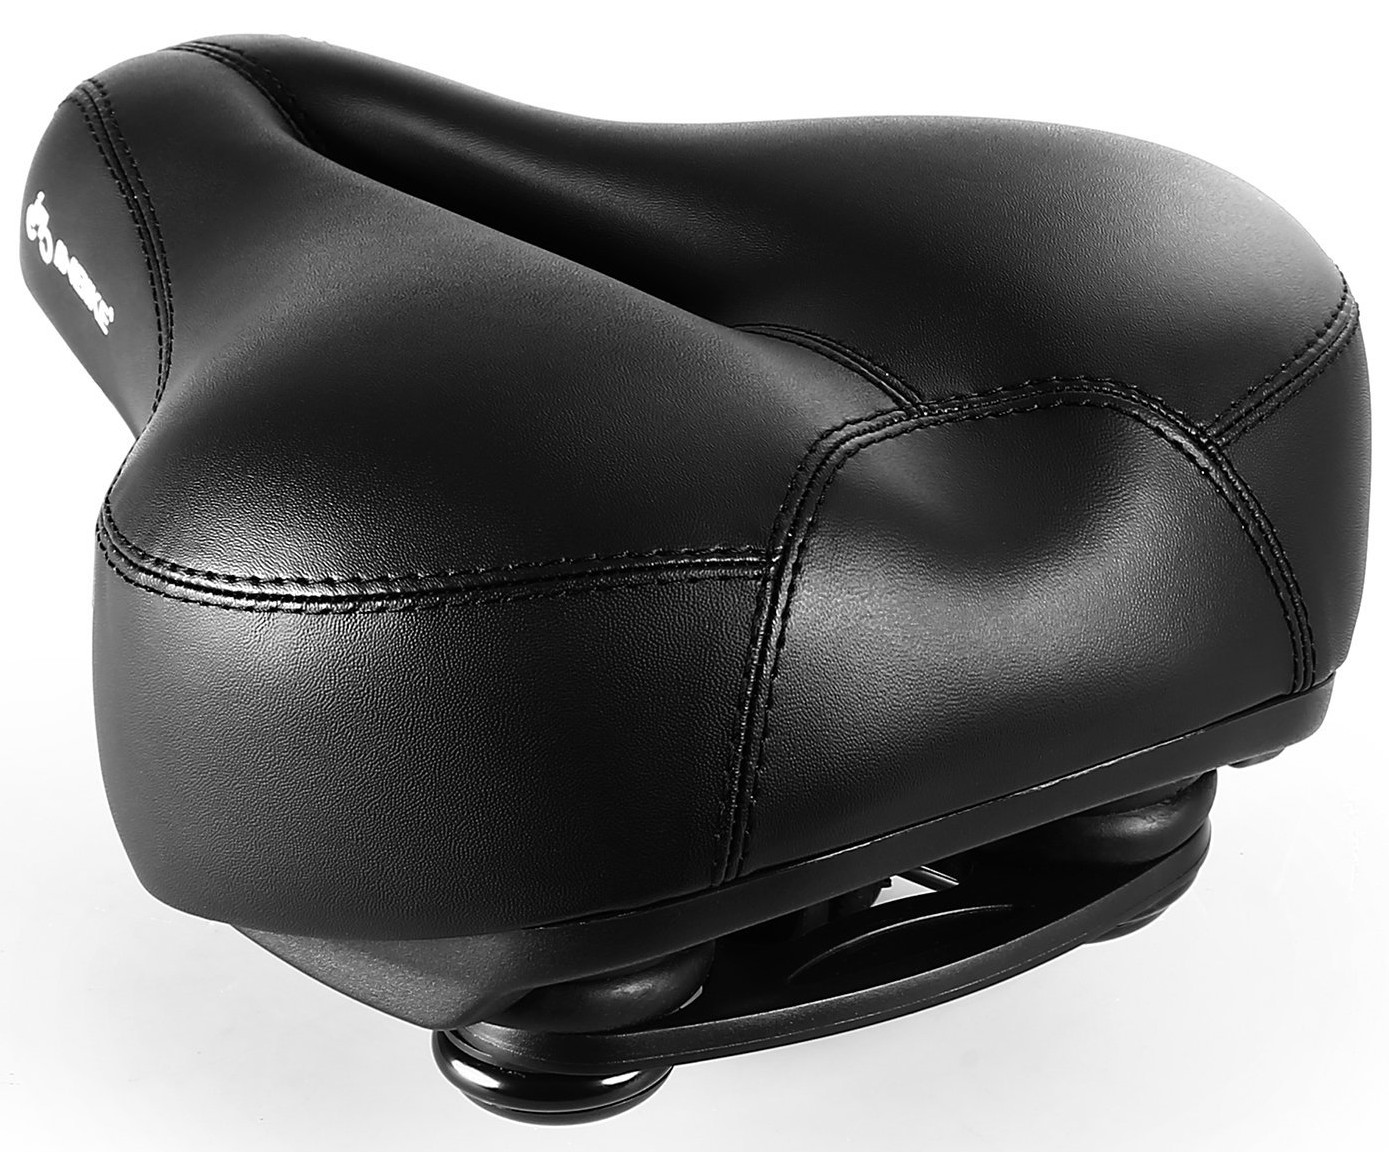 INBIKE Most Comfortable Bicycle Seat, Foam Padded Breathable Big Bike Seat for Men